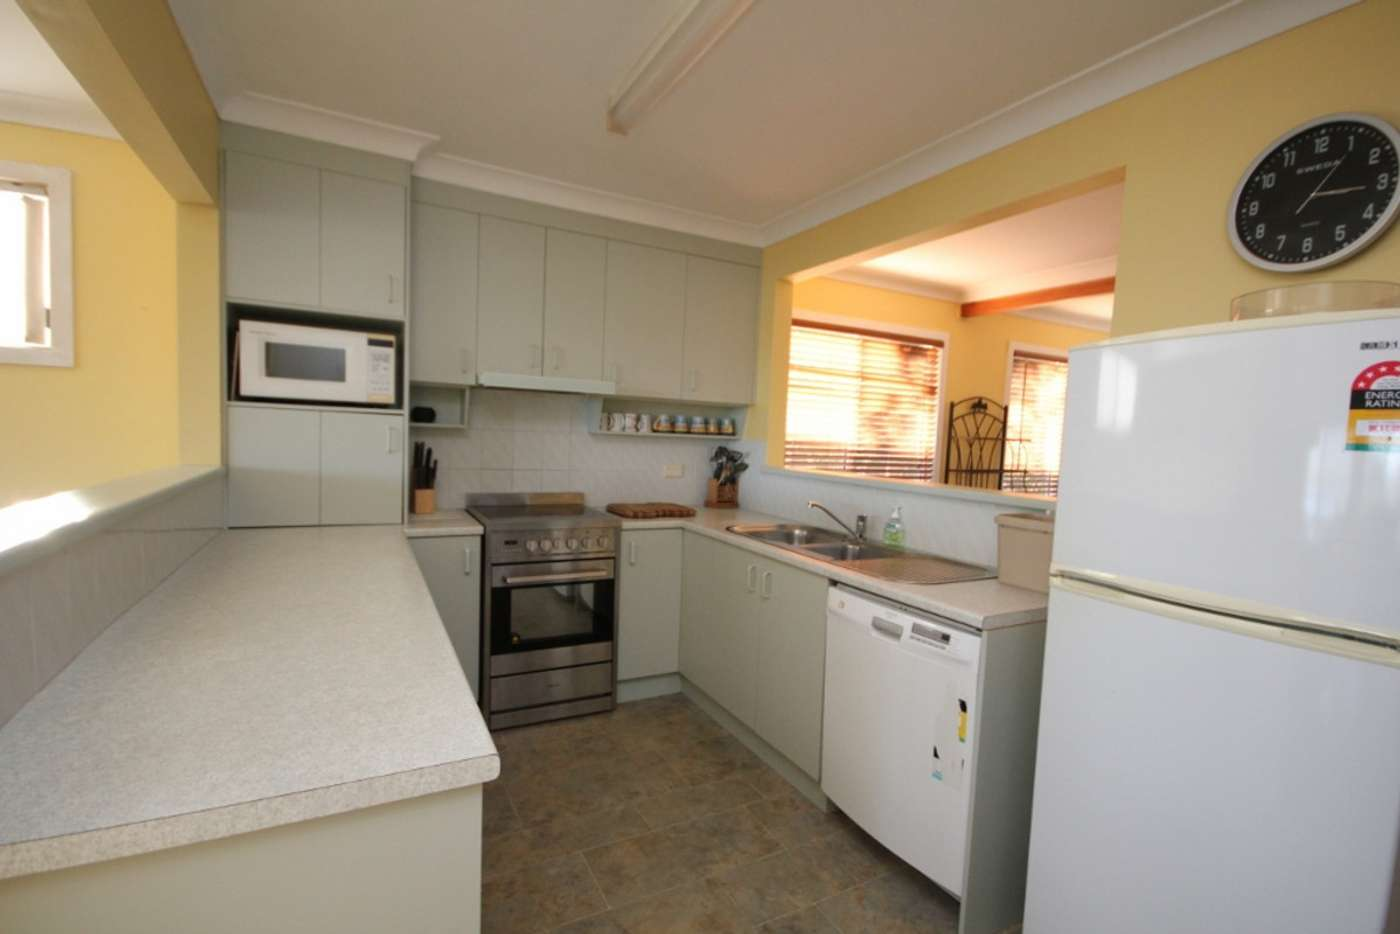 Sixth view of Homely house listing, 138 Camden Head Road, Camden Head NSW 2443